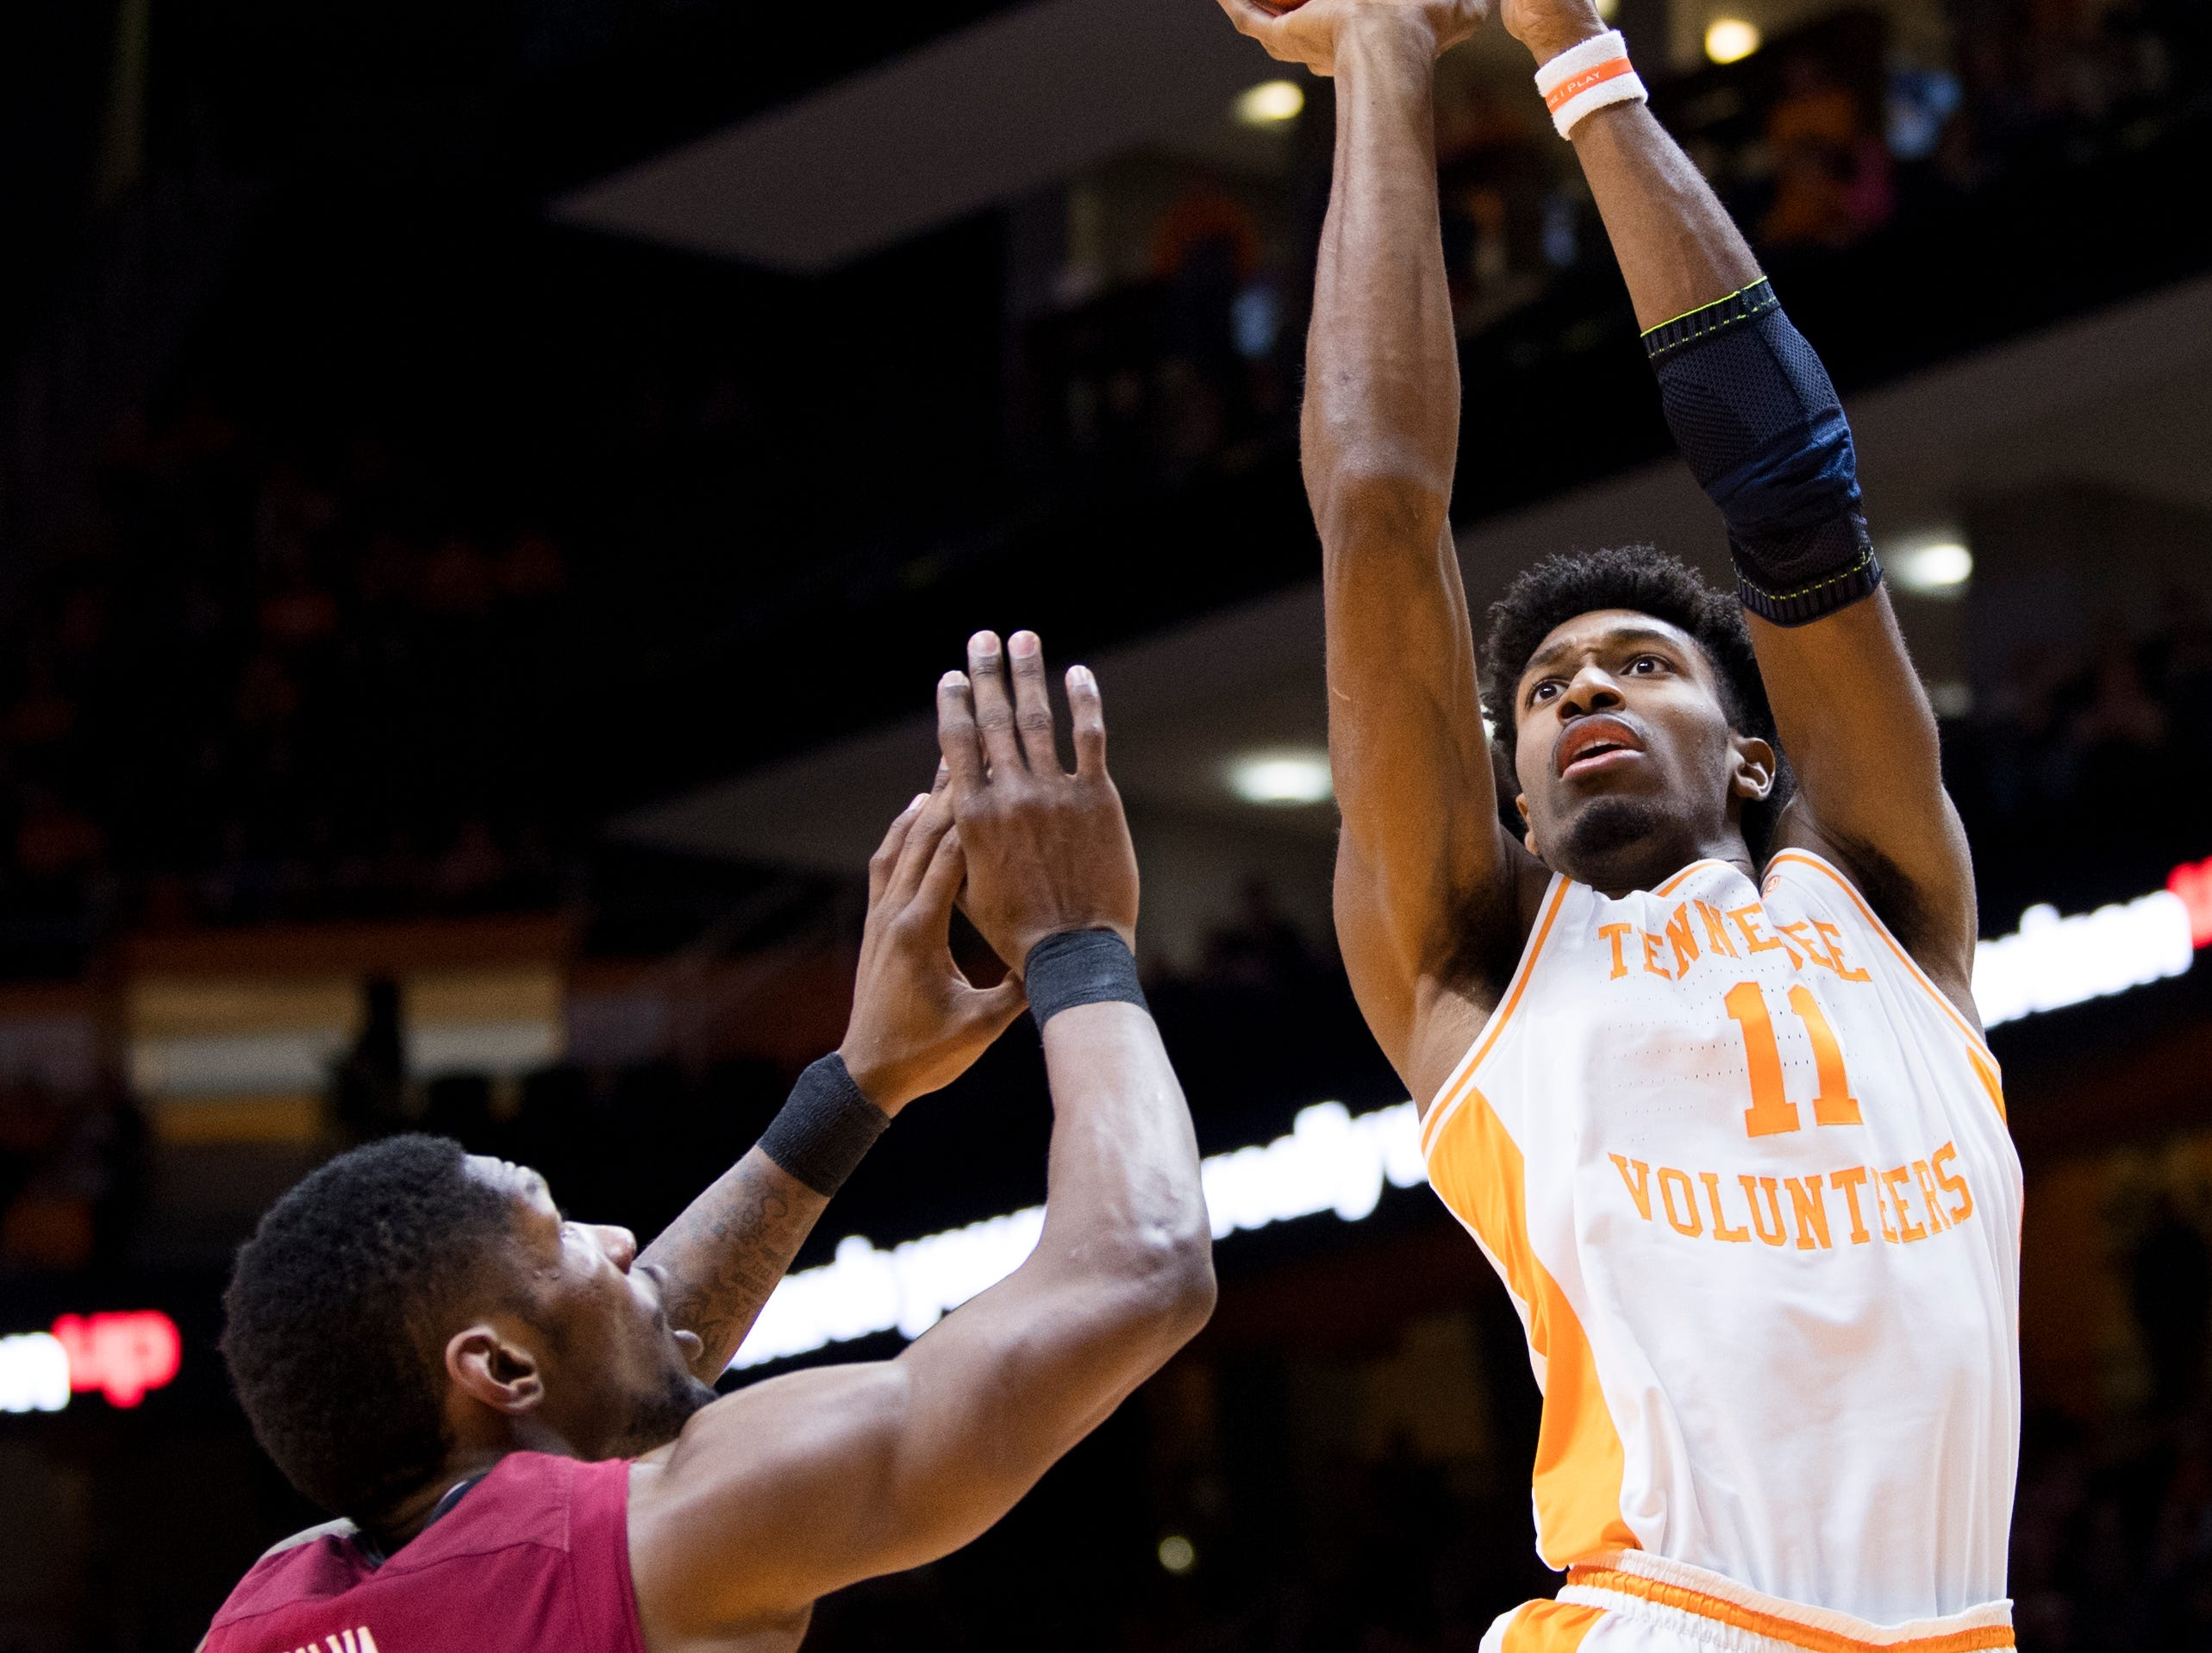 Tennessee forward Kyle Alexander (11) attempts a shot during Tennessee's home SEC game against South Carolina at Thompson-Boling Arena in Knoxville on Wednesday, February 13, 2019.